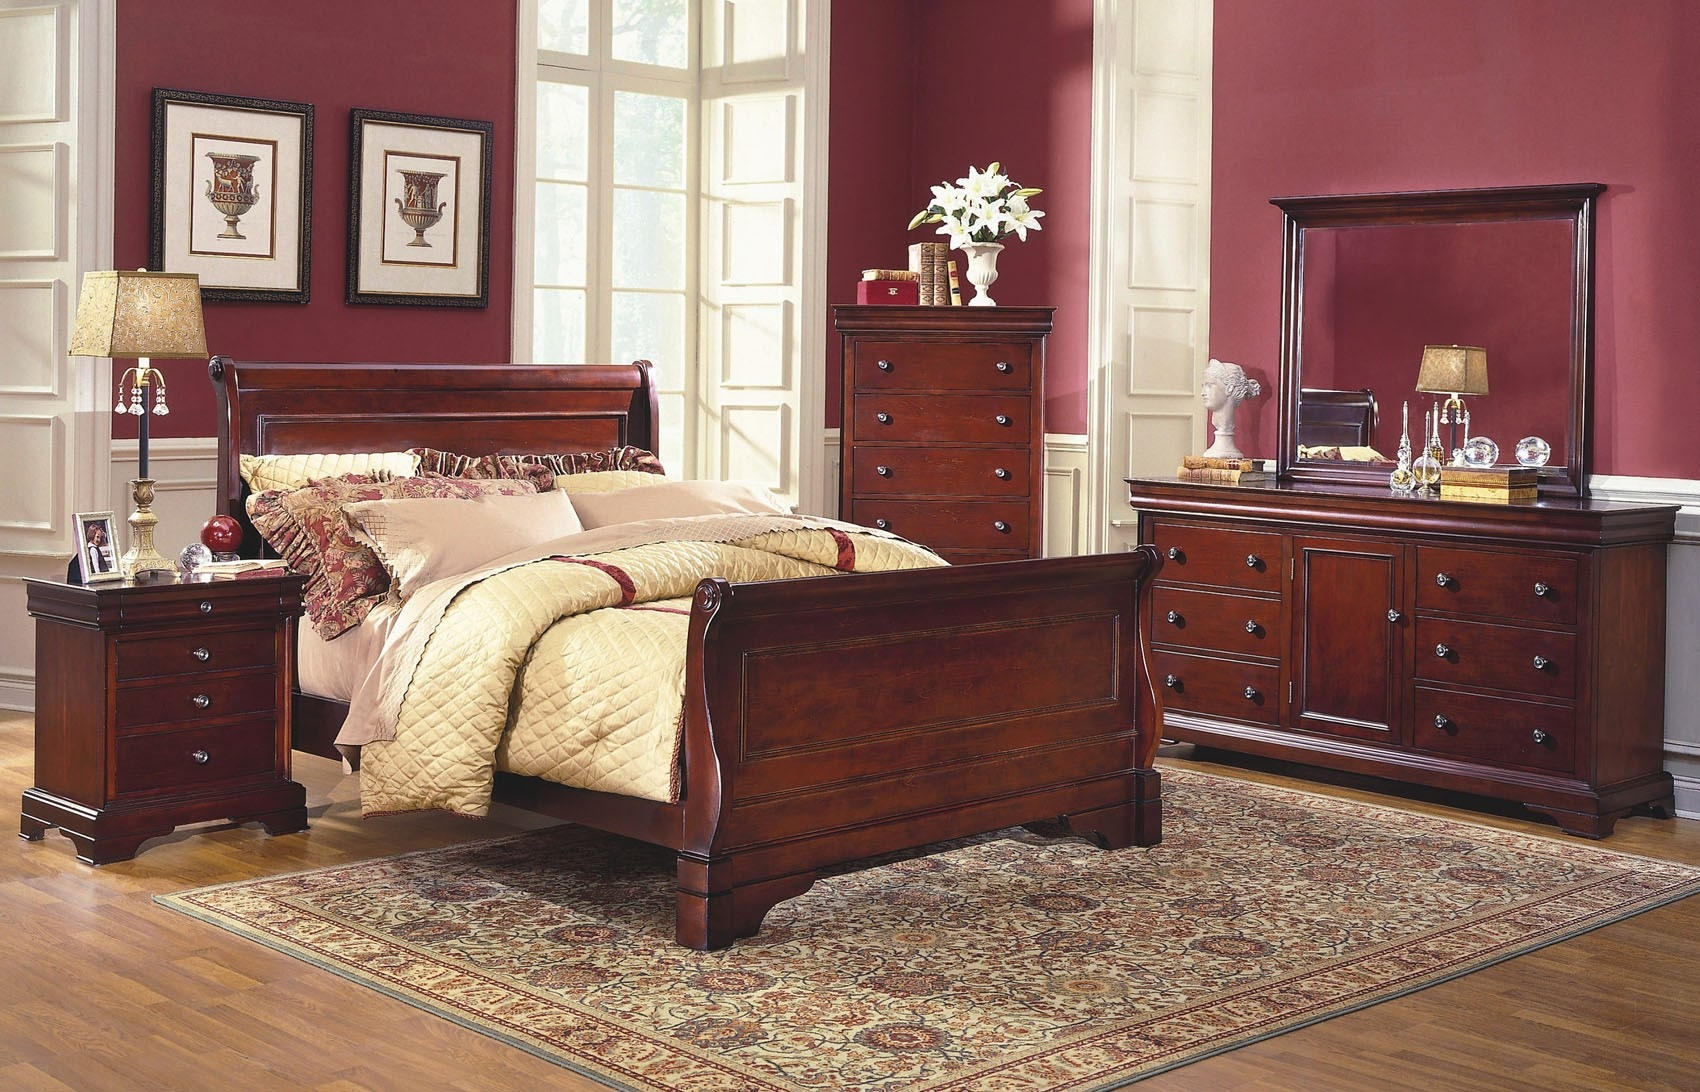 New Classic Home Furnishings Inc Versailles Bedroom Group